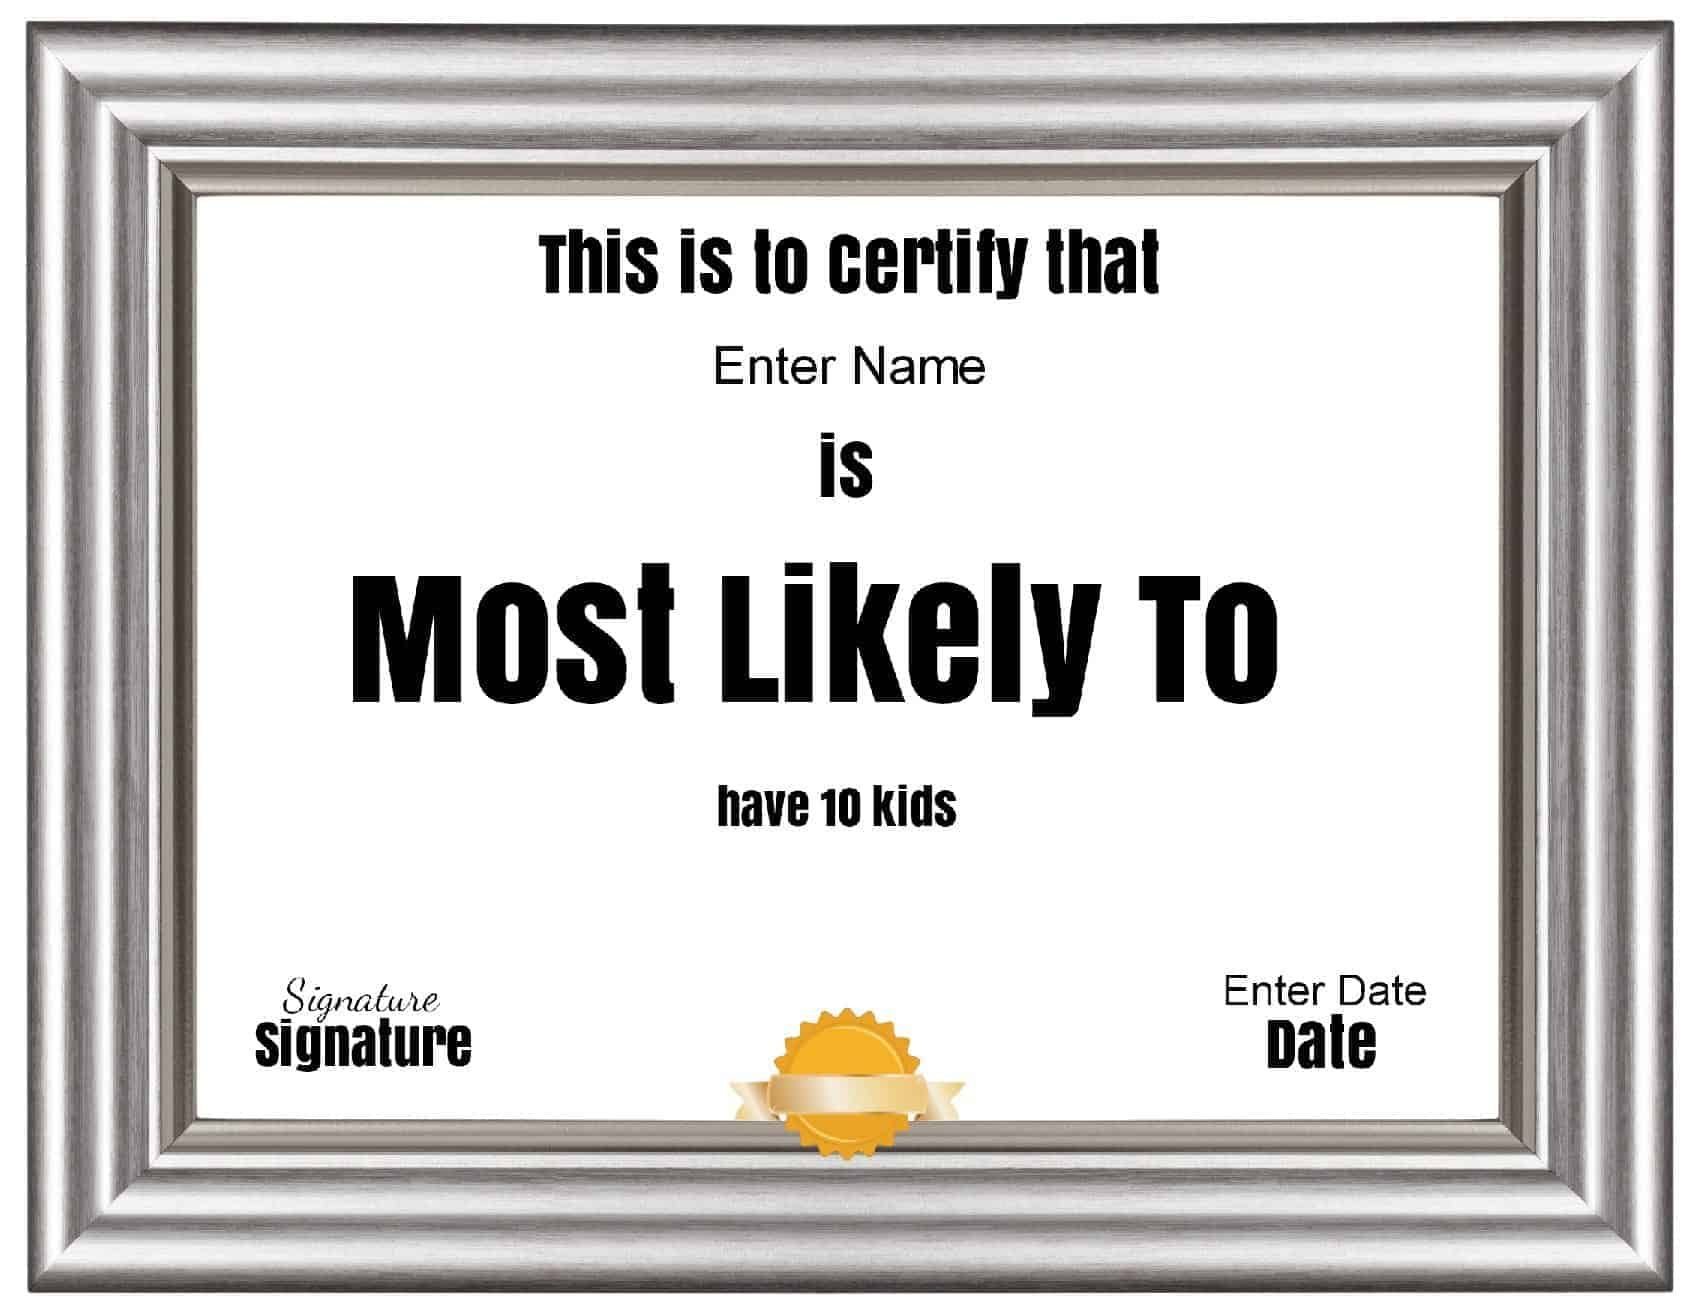 Free Customizable Most Likely To Awards In 2021 Most Likely To Awards Funny Certificates Certificate Templates Most likely to award template